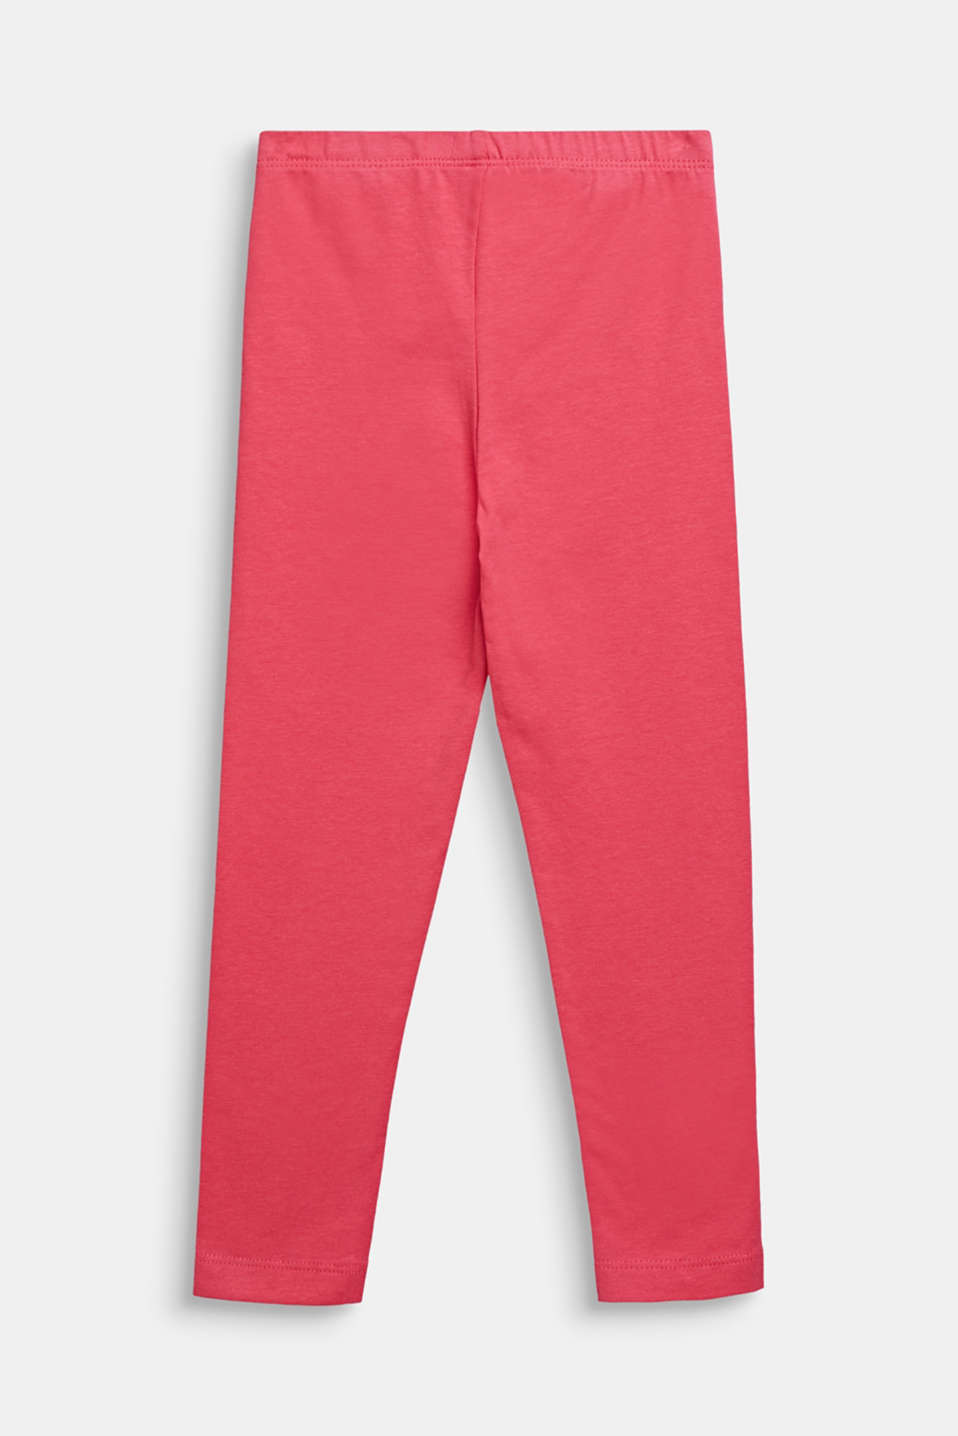 Opaque basic leggings, DARK PINK, detail image number 1